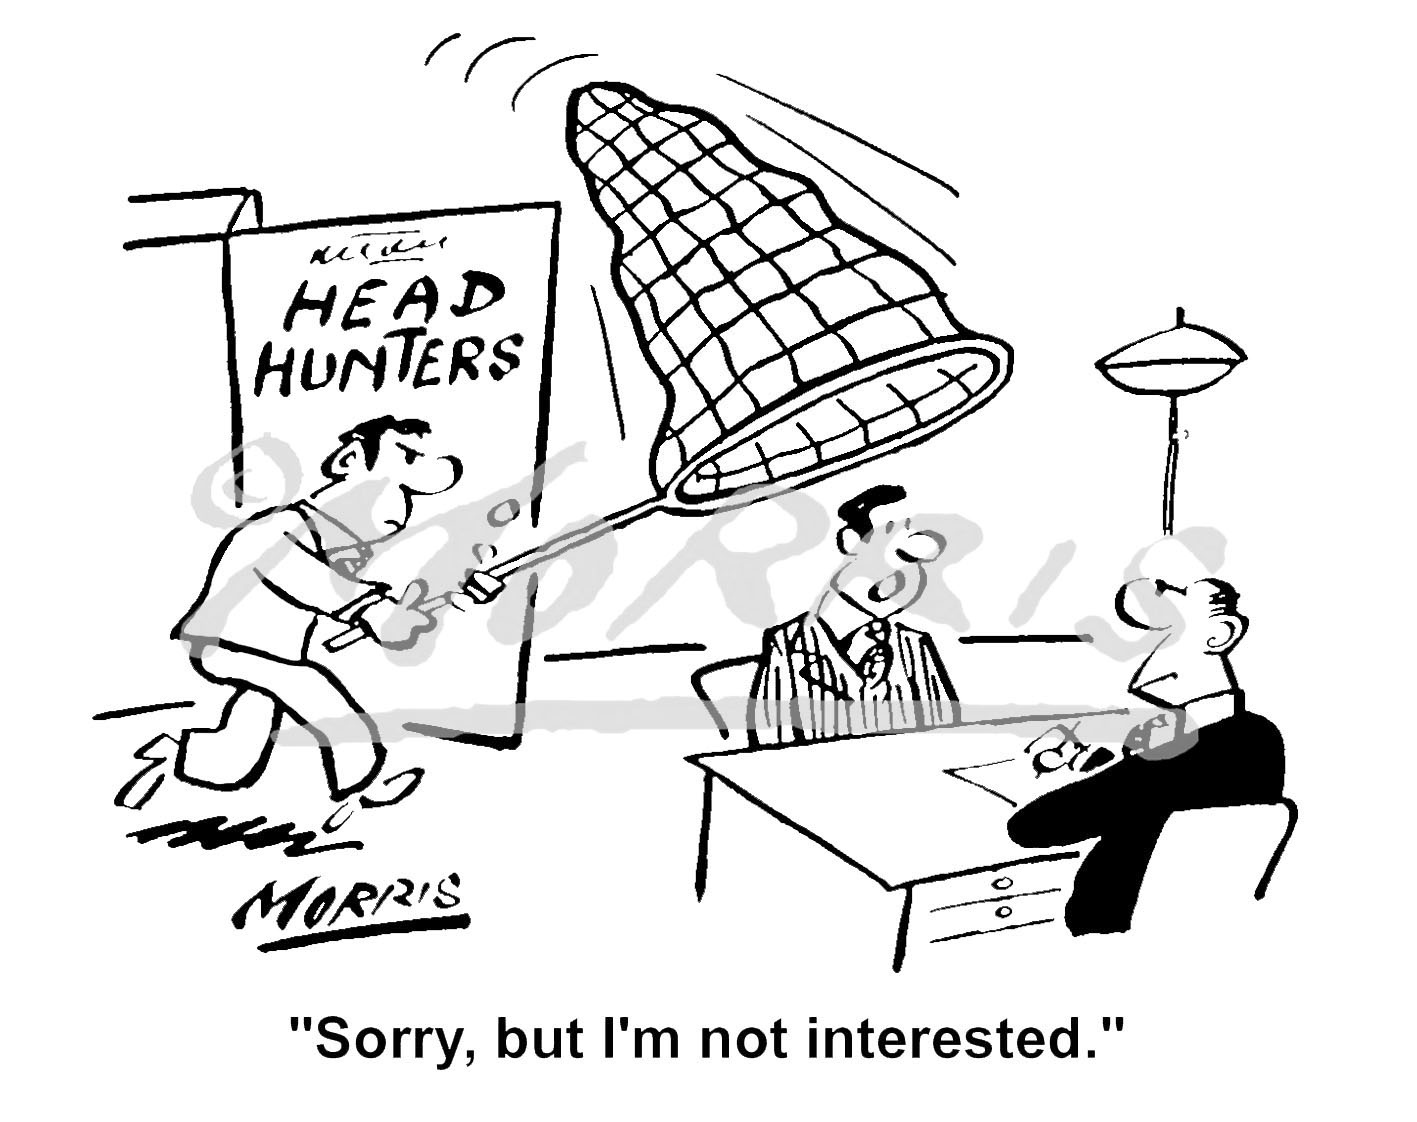 Head hunting business cartoon – Ref: 3003bw